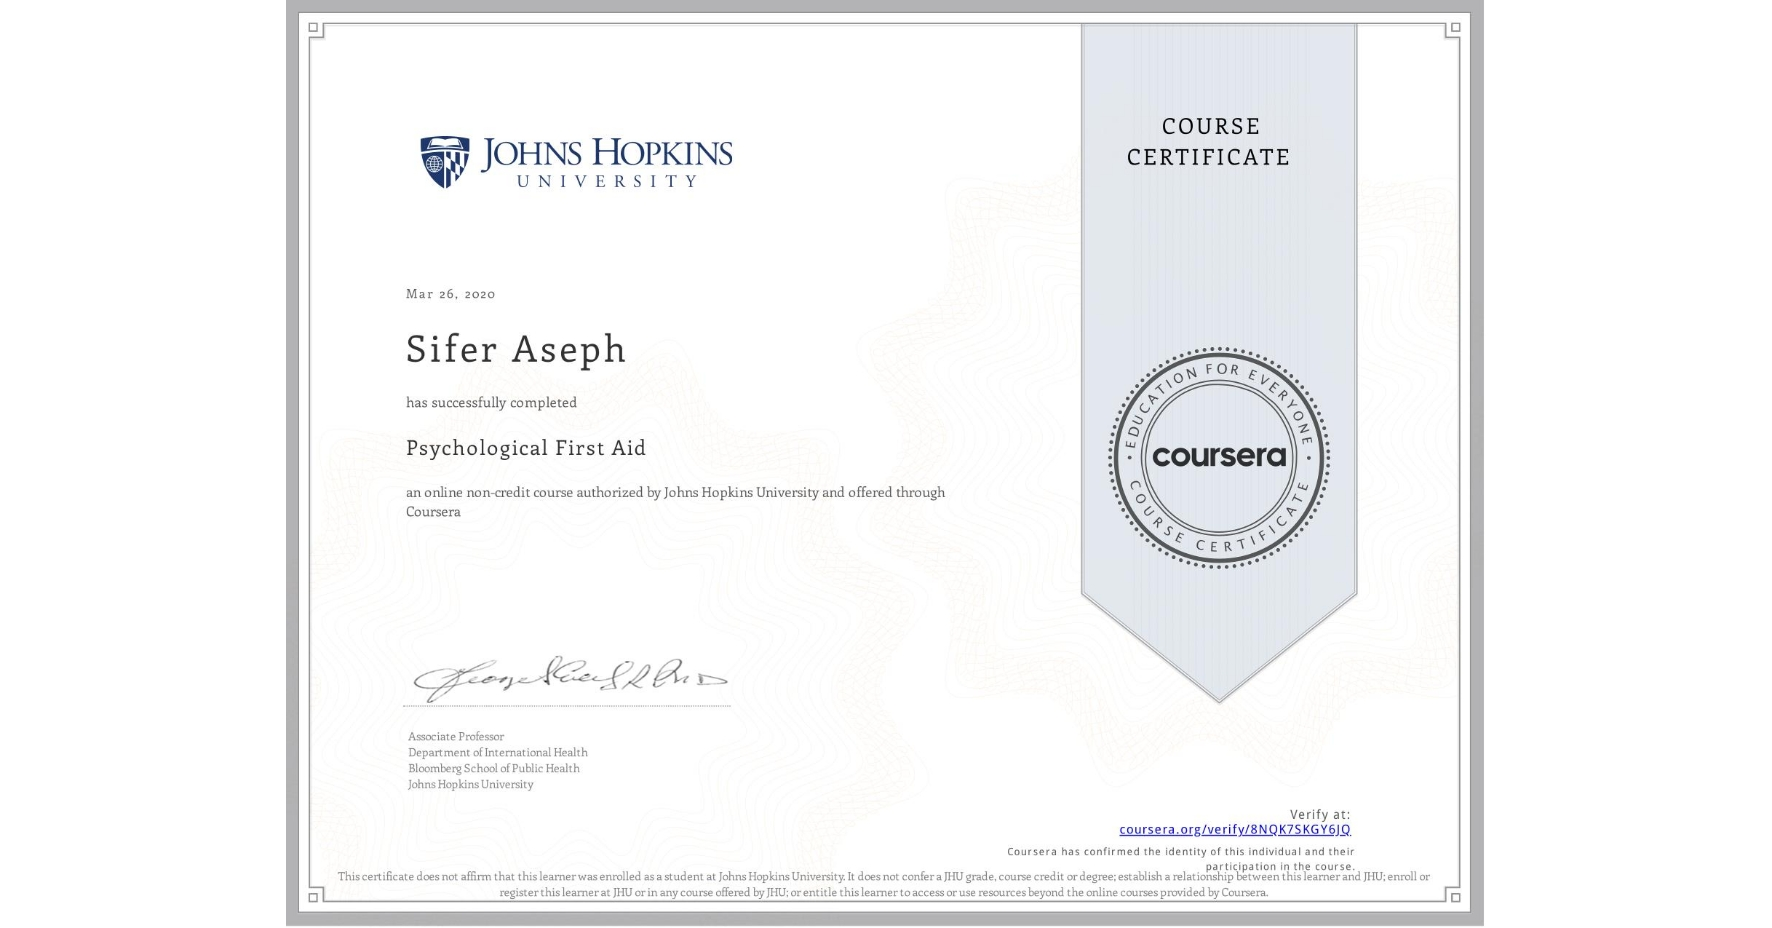 View certificate for Sifer Aseph, Psychological First Aid, an online non-credit course authorized by Johns Hopkins University and offered through Coursera